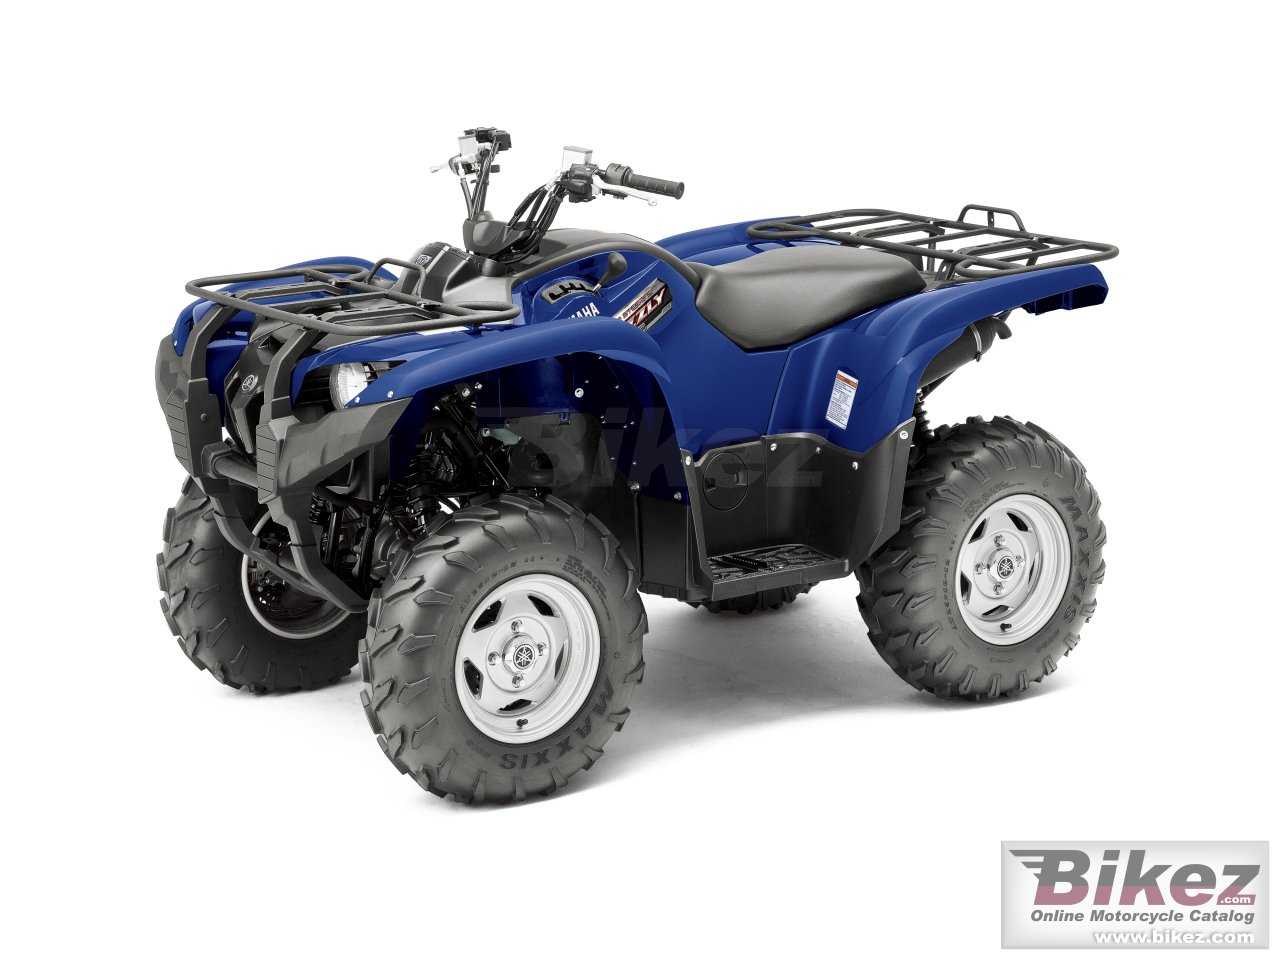 Big Yamaha grizzly 550 fi auto 4x4 eps picture and wallpaper from Bikez.com